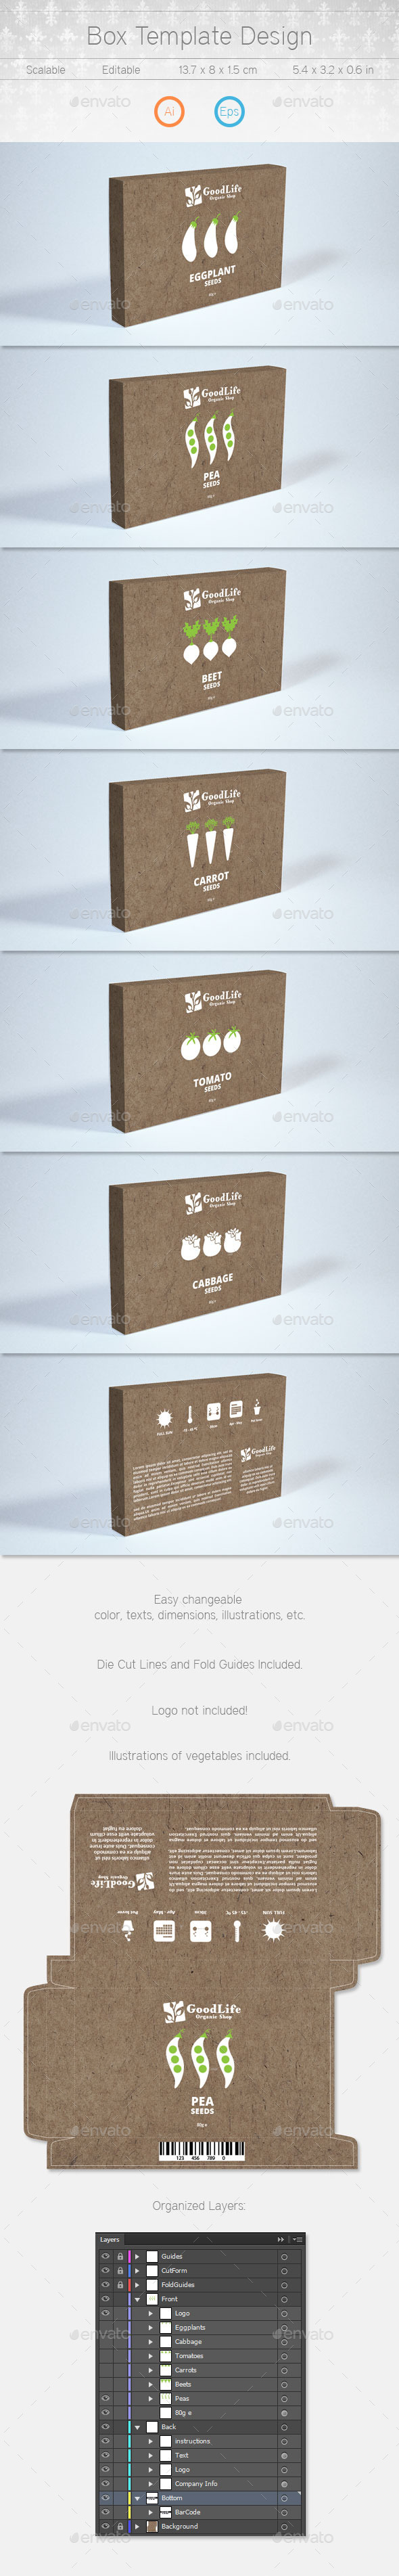 GraphicRiver Box Template Design 10243679